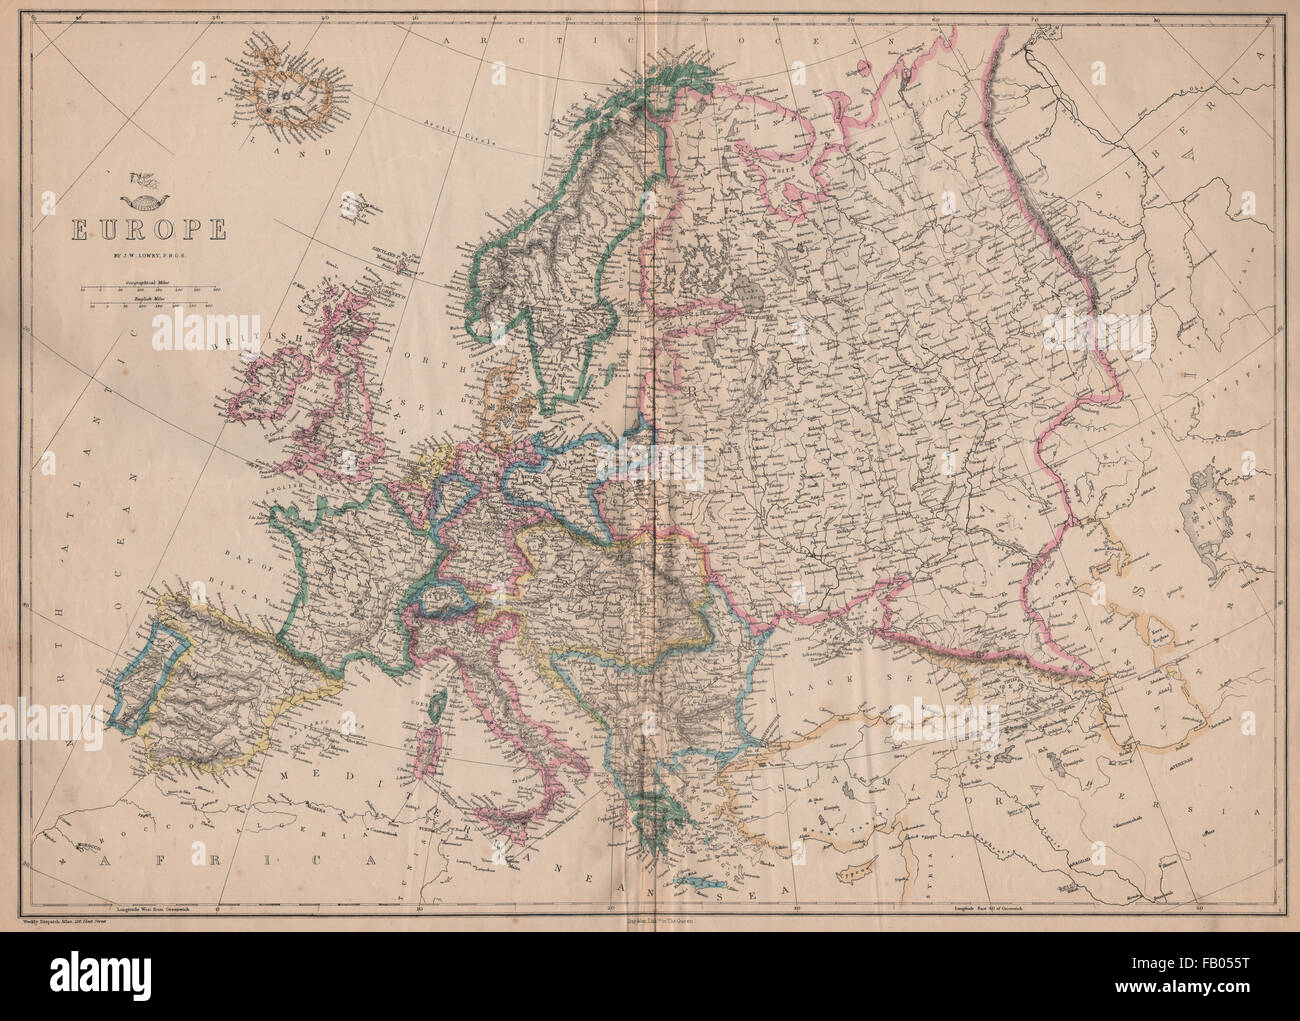 Europe Shows Prussia British Ionian Islands Ottoman Empire Lowry